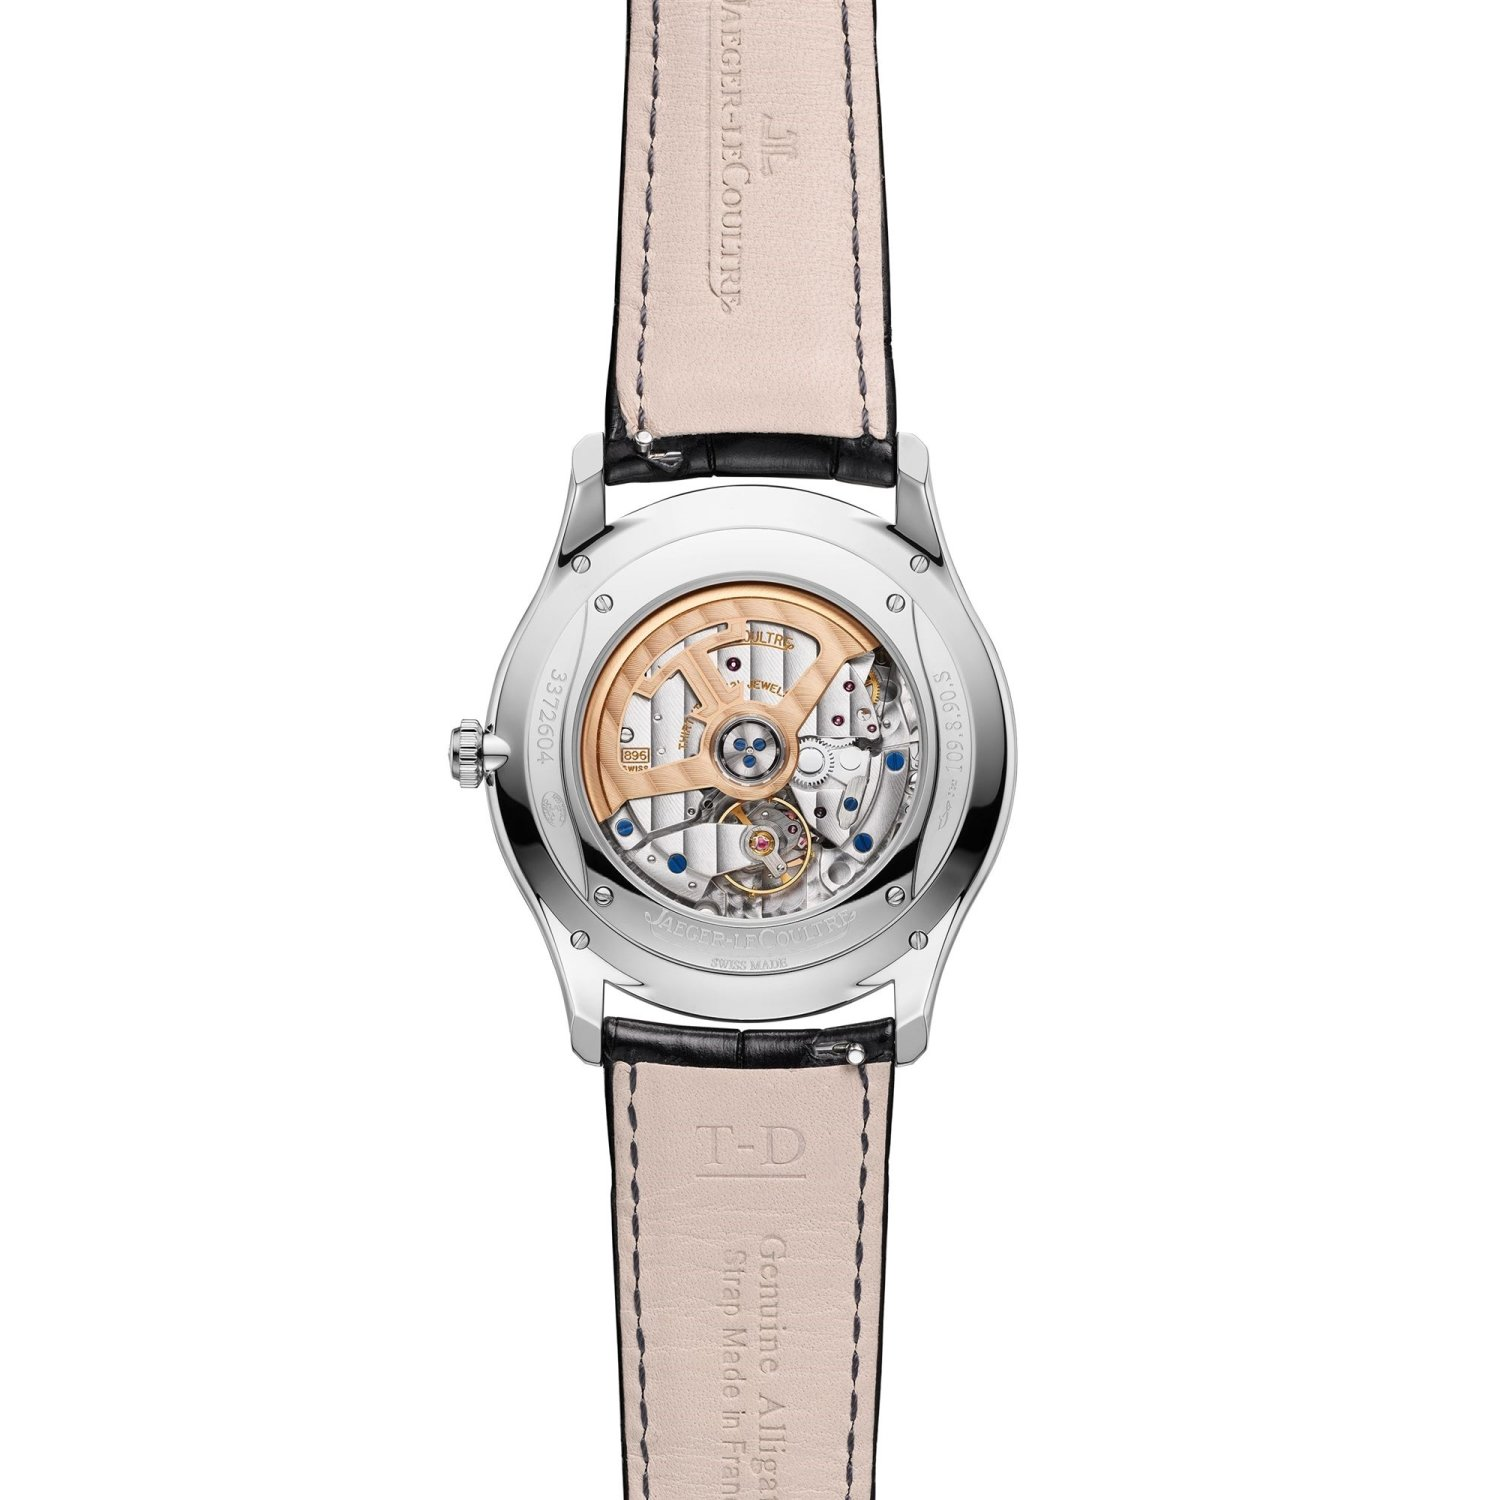 Montre Jaeger-LeCoultre Master Ultra Thin Small Seconds vue 2